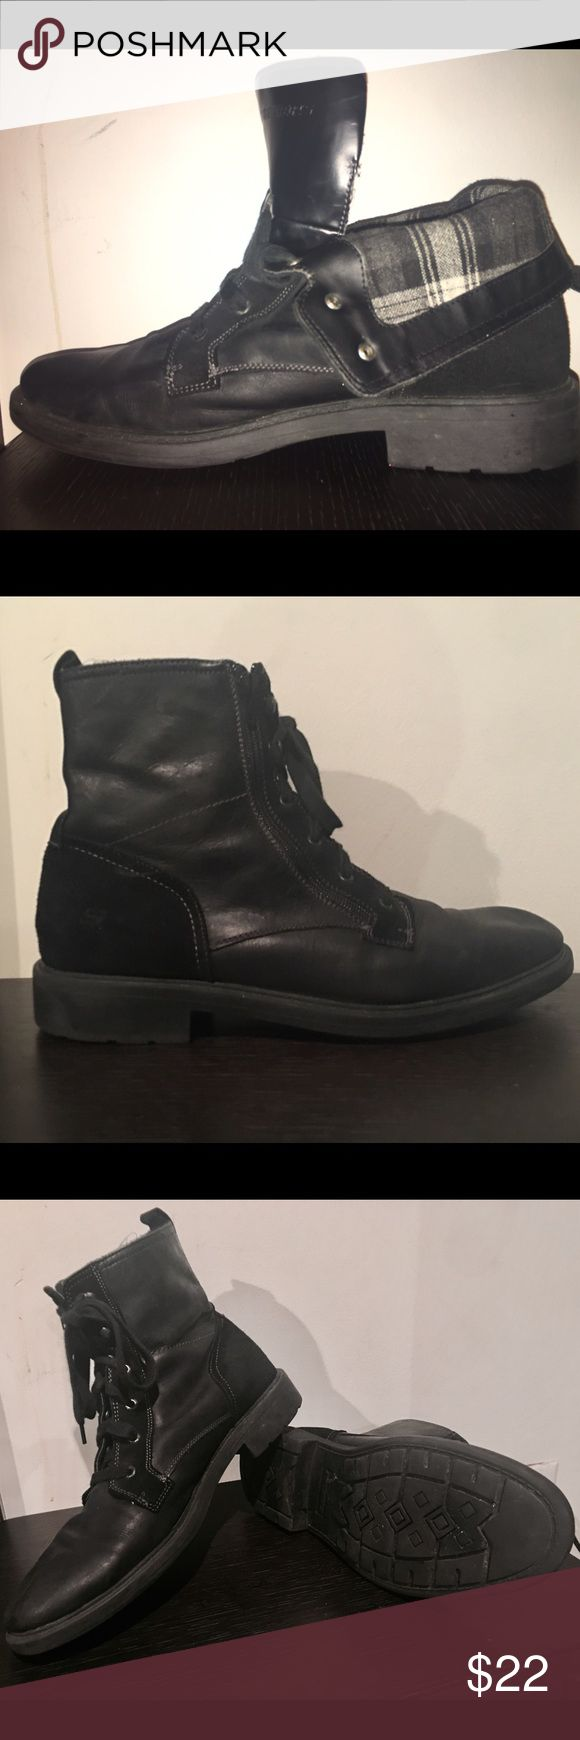 Black Leather Fold Over Boots By Skechers Men's 12 Super cool versatile black boots. Full boot - zipped up Black Leather and suede outside Ankle boot- unzip exposing the black and white plaid interiors. Great traction for mud and snow. Preowned rarely worn living in the sunshine.  Great condition (see pics) Skechers Shoes Boots